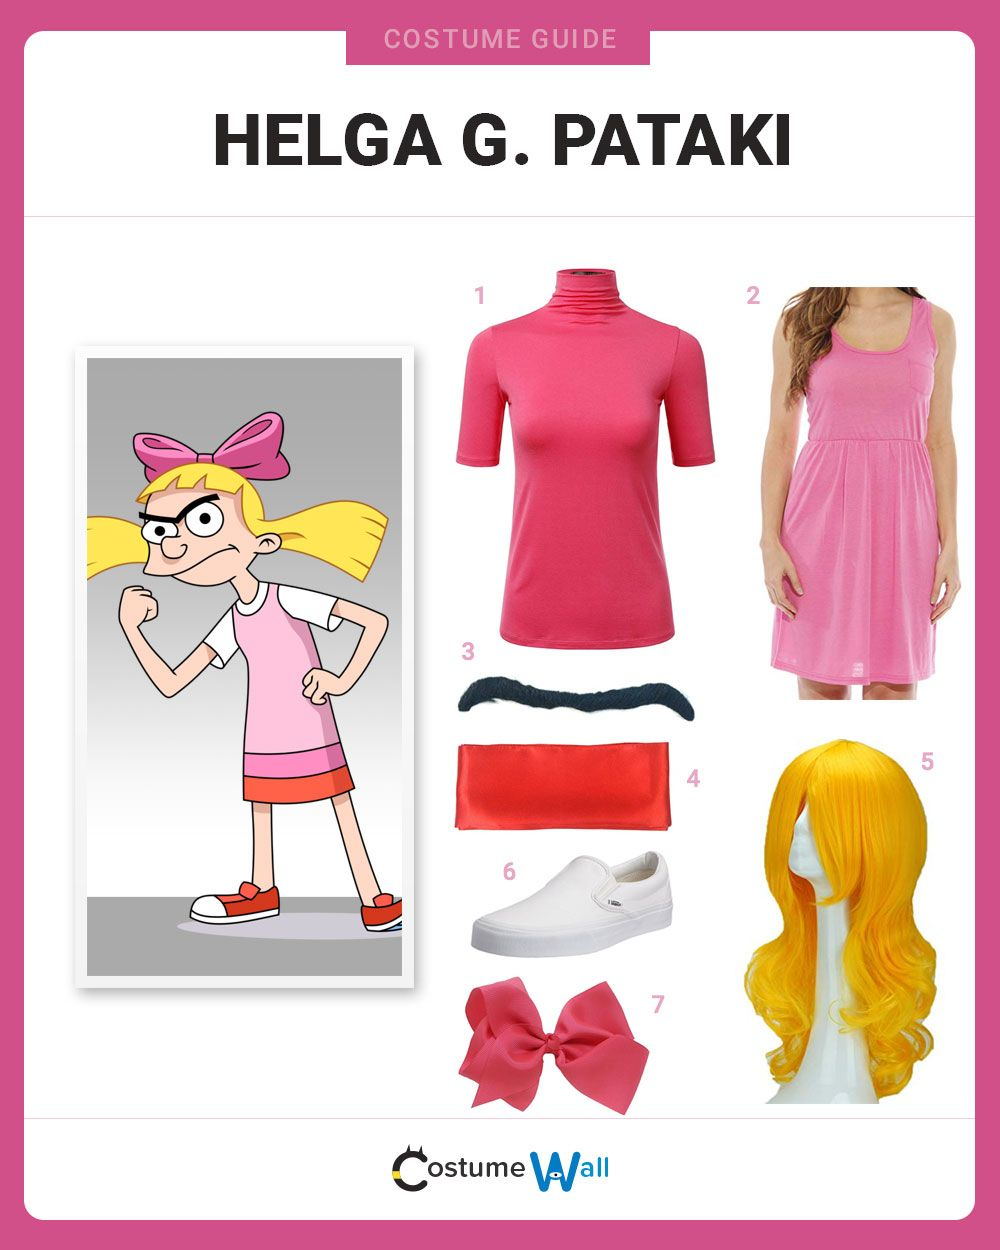 dress like helga g. pataki | costume and cosplay guide | pinterest